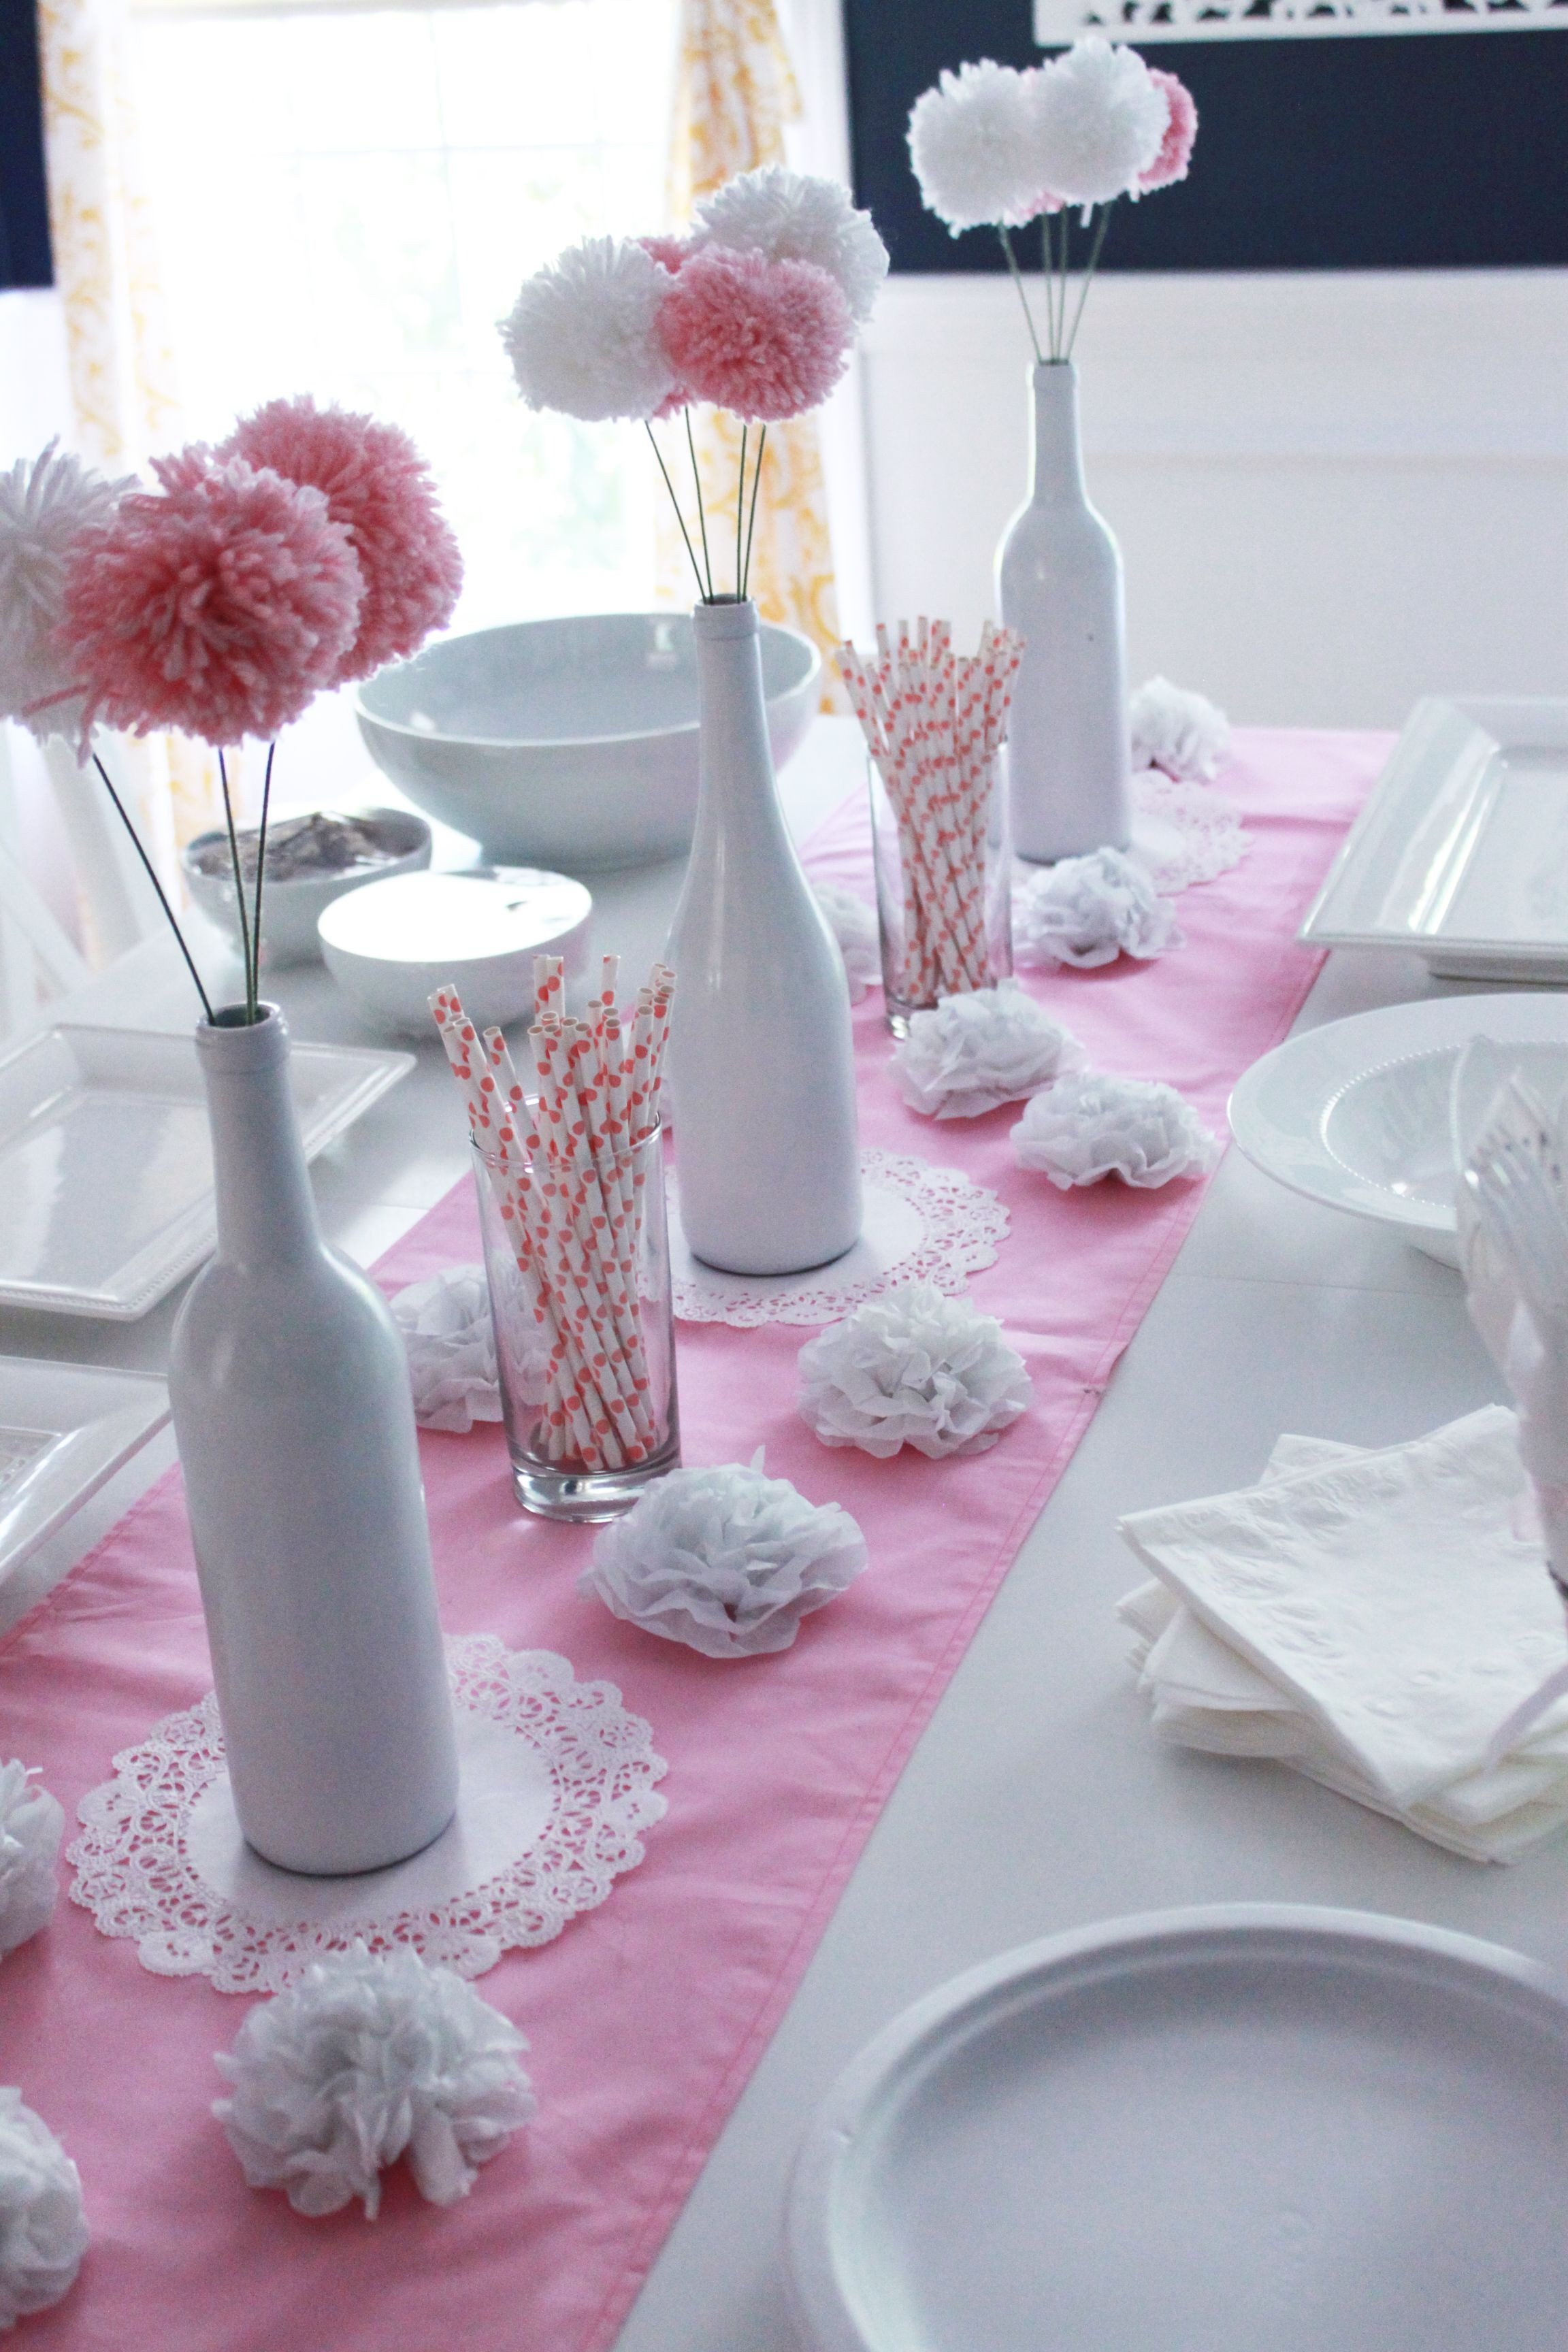 Best ideas about Baby Shower DIY Decorations . Save or Pin DIY Baby Shower Ideas for Girls Now.